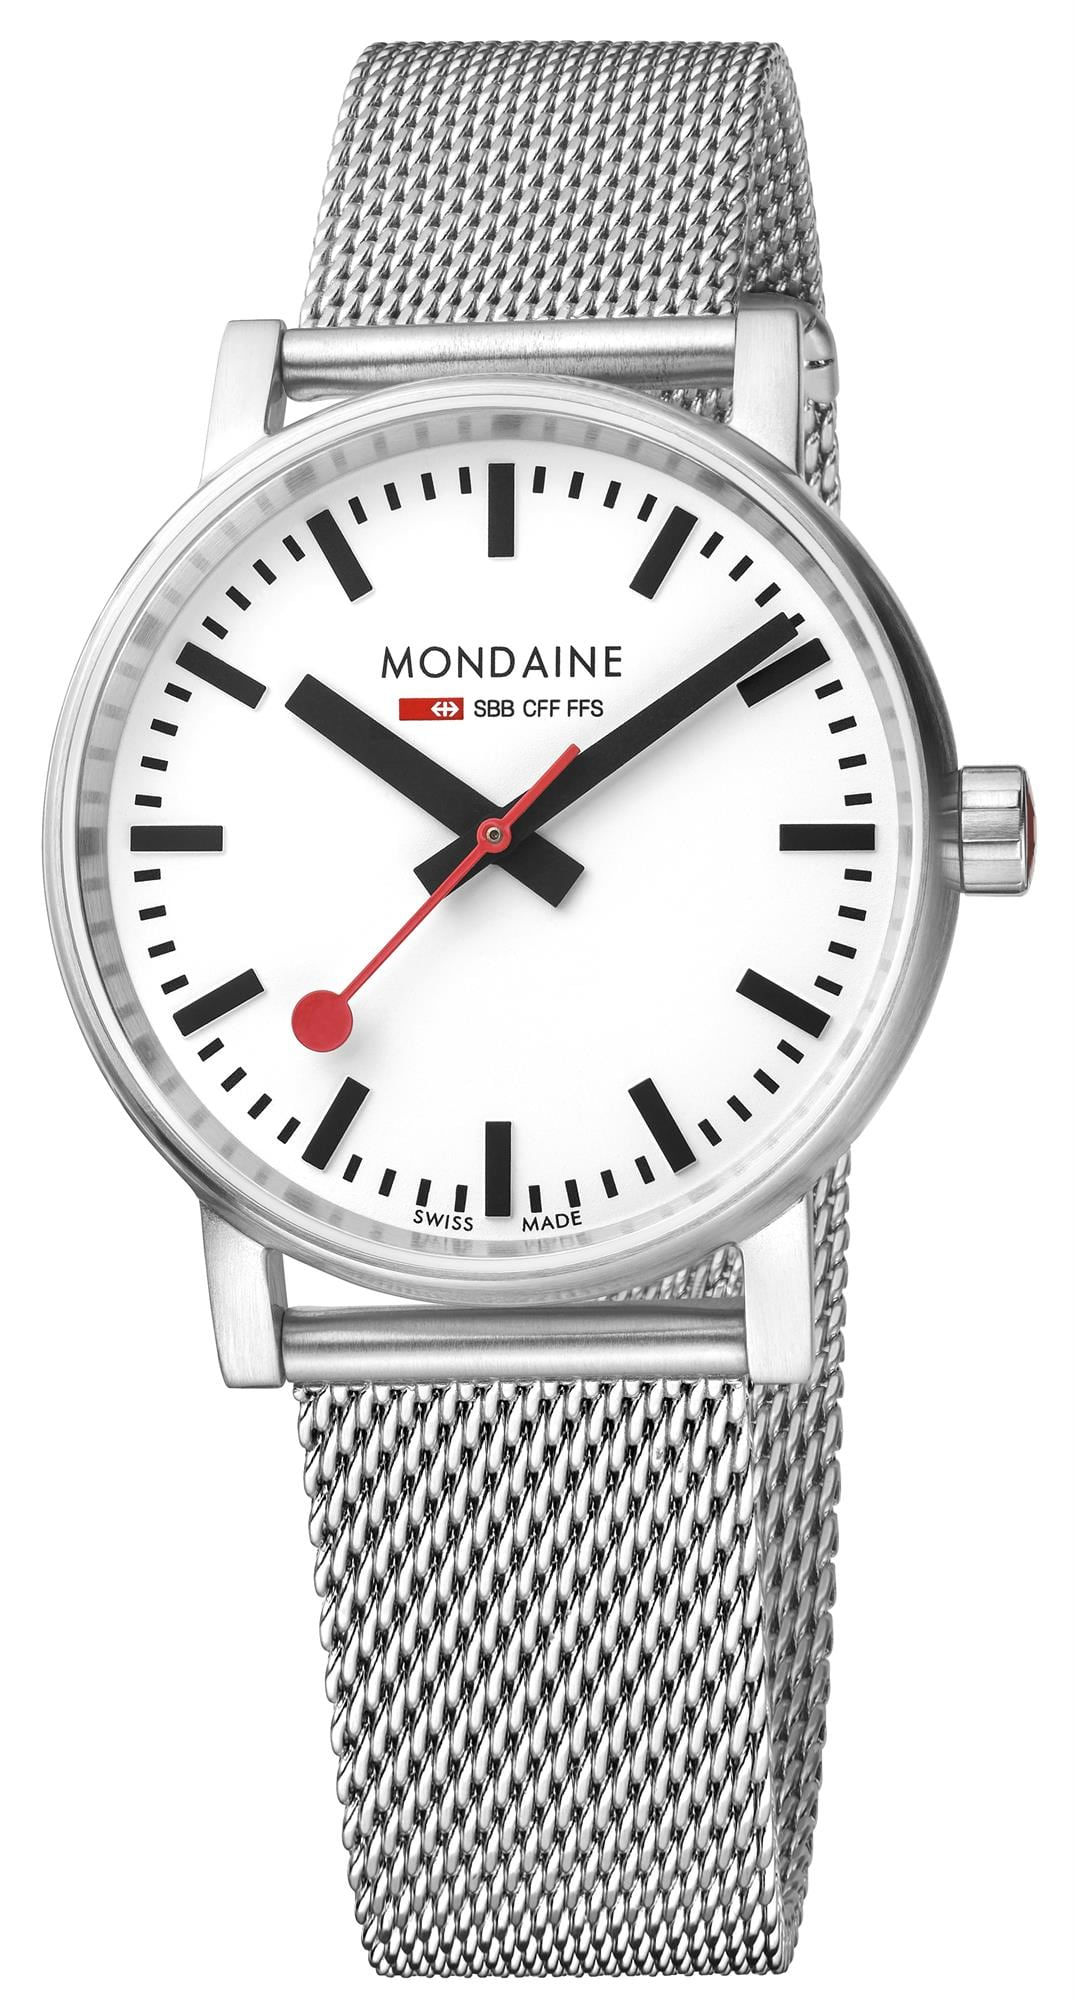 Mondaine evo2 Stainless Steel Case Stainless Steel Mesh